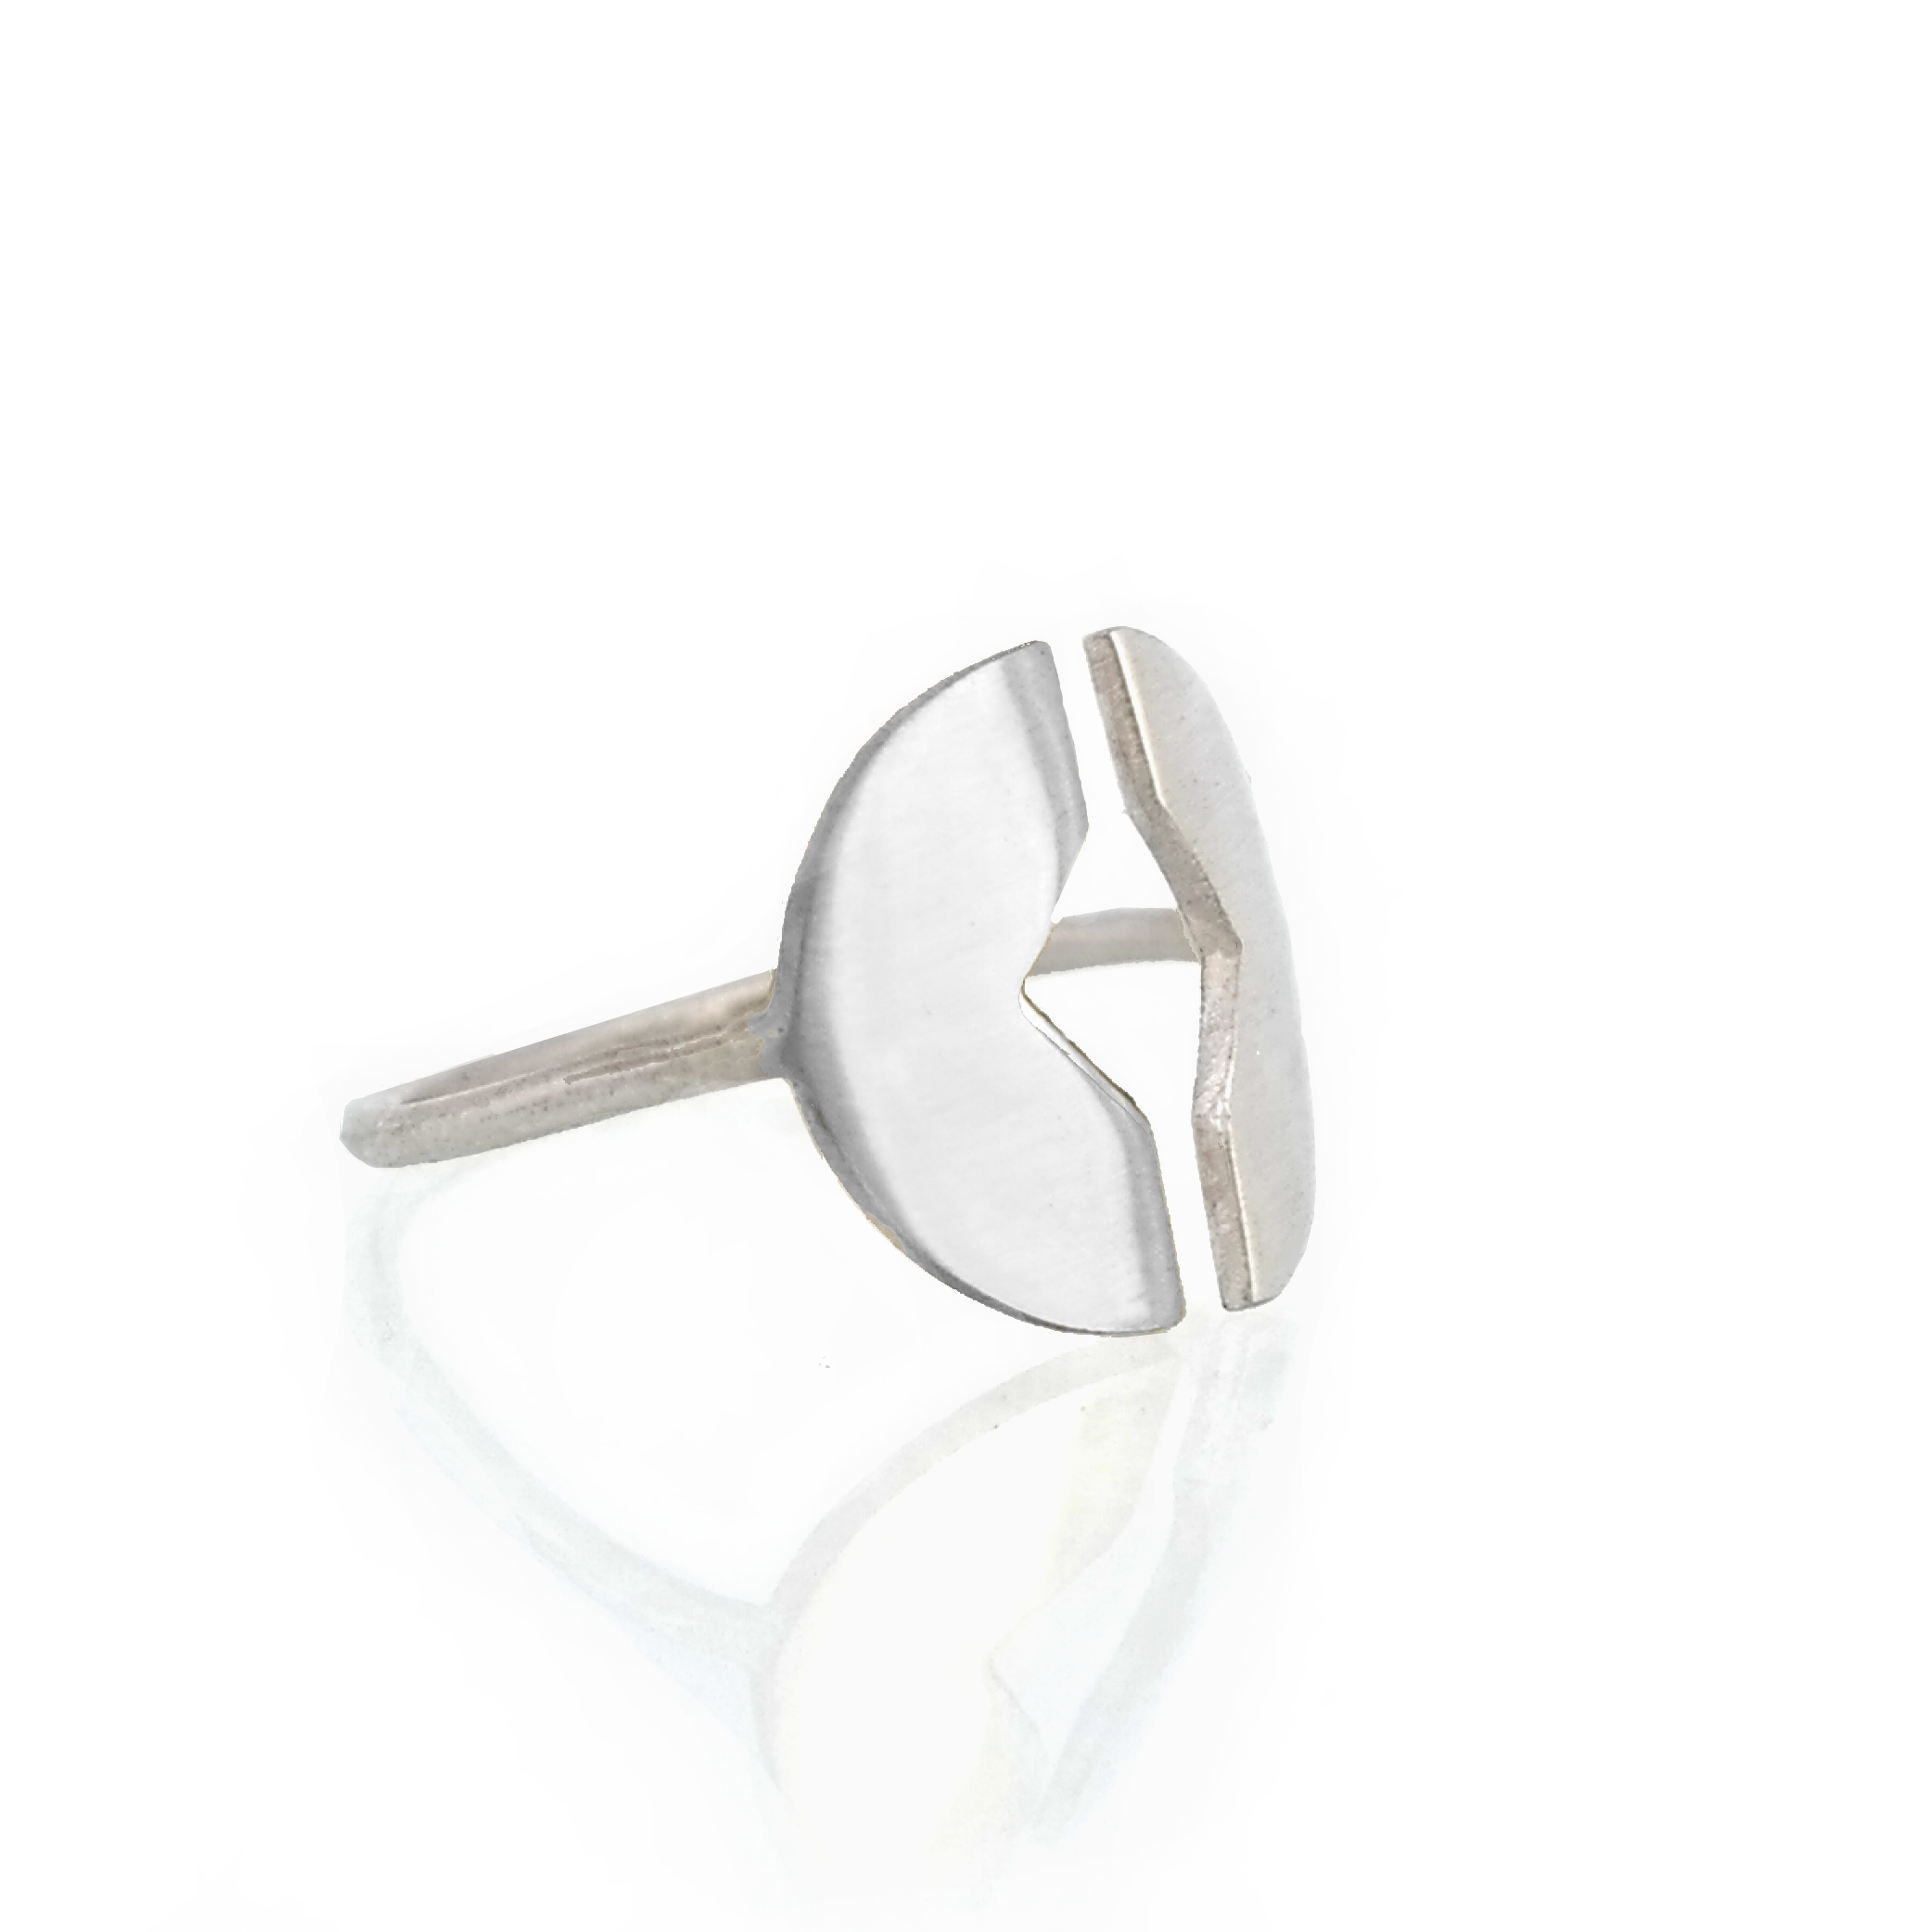 Silver fawo adjustable ring